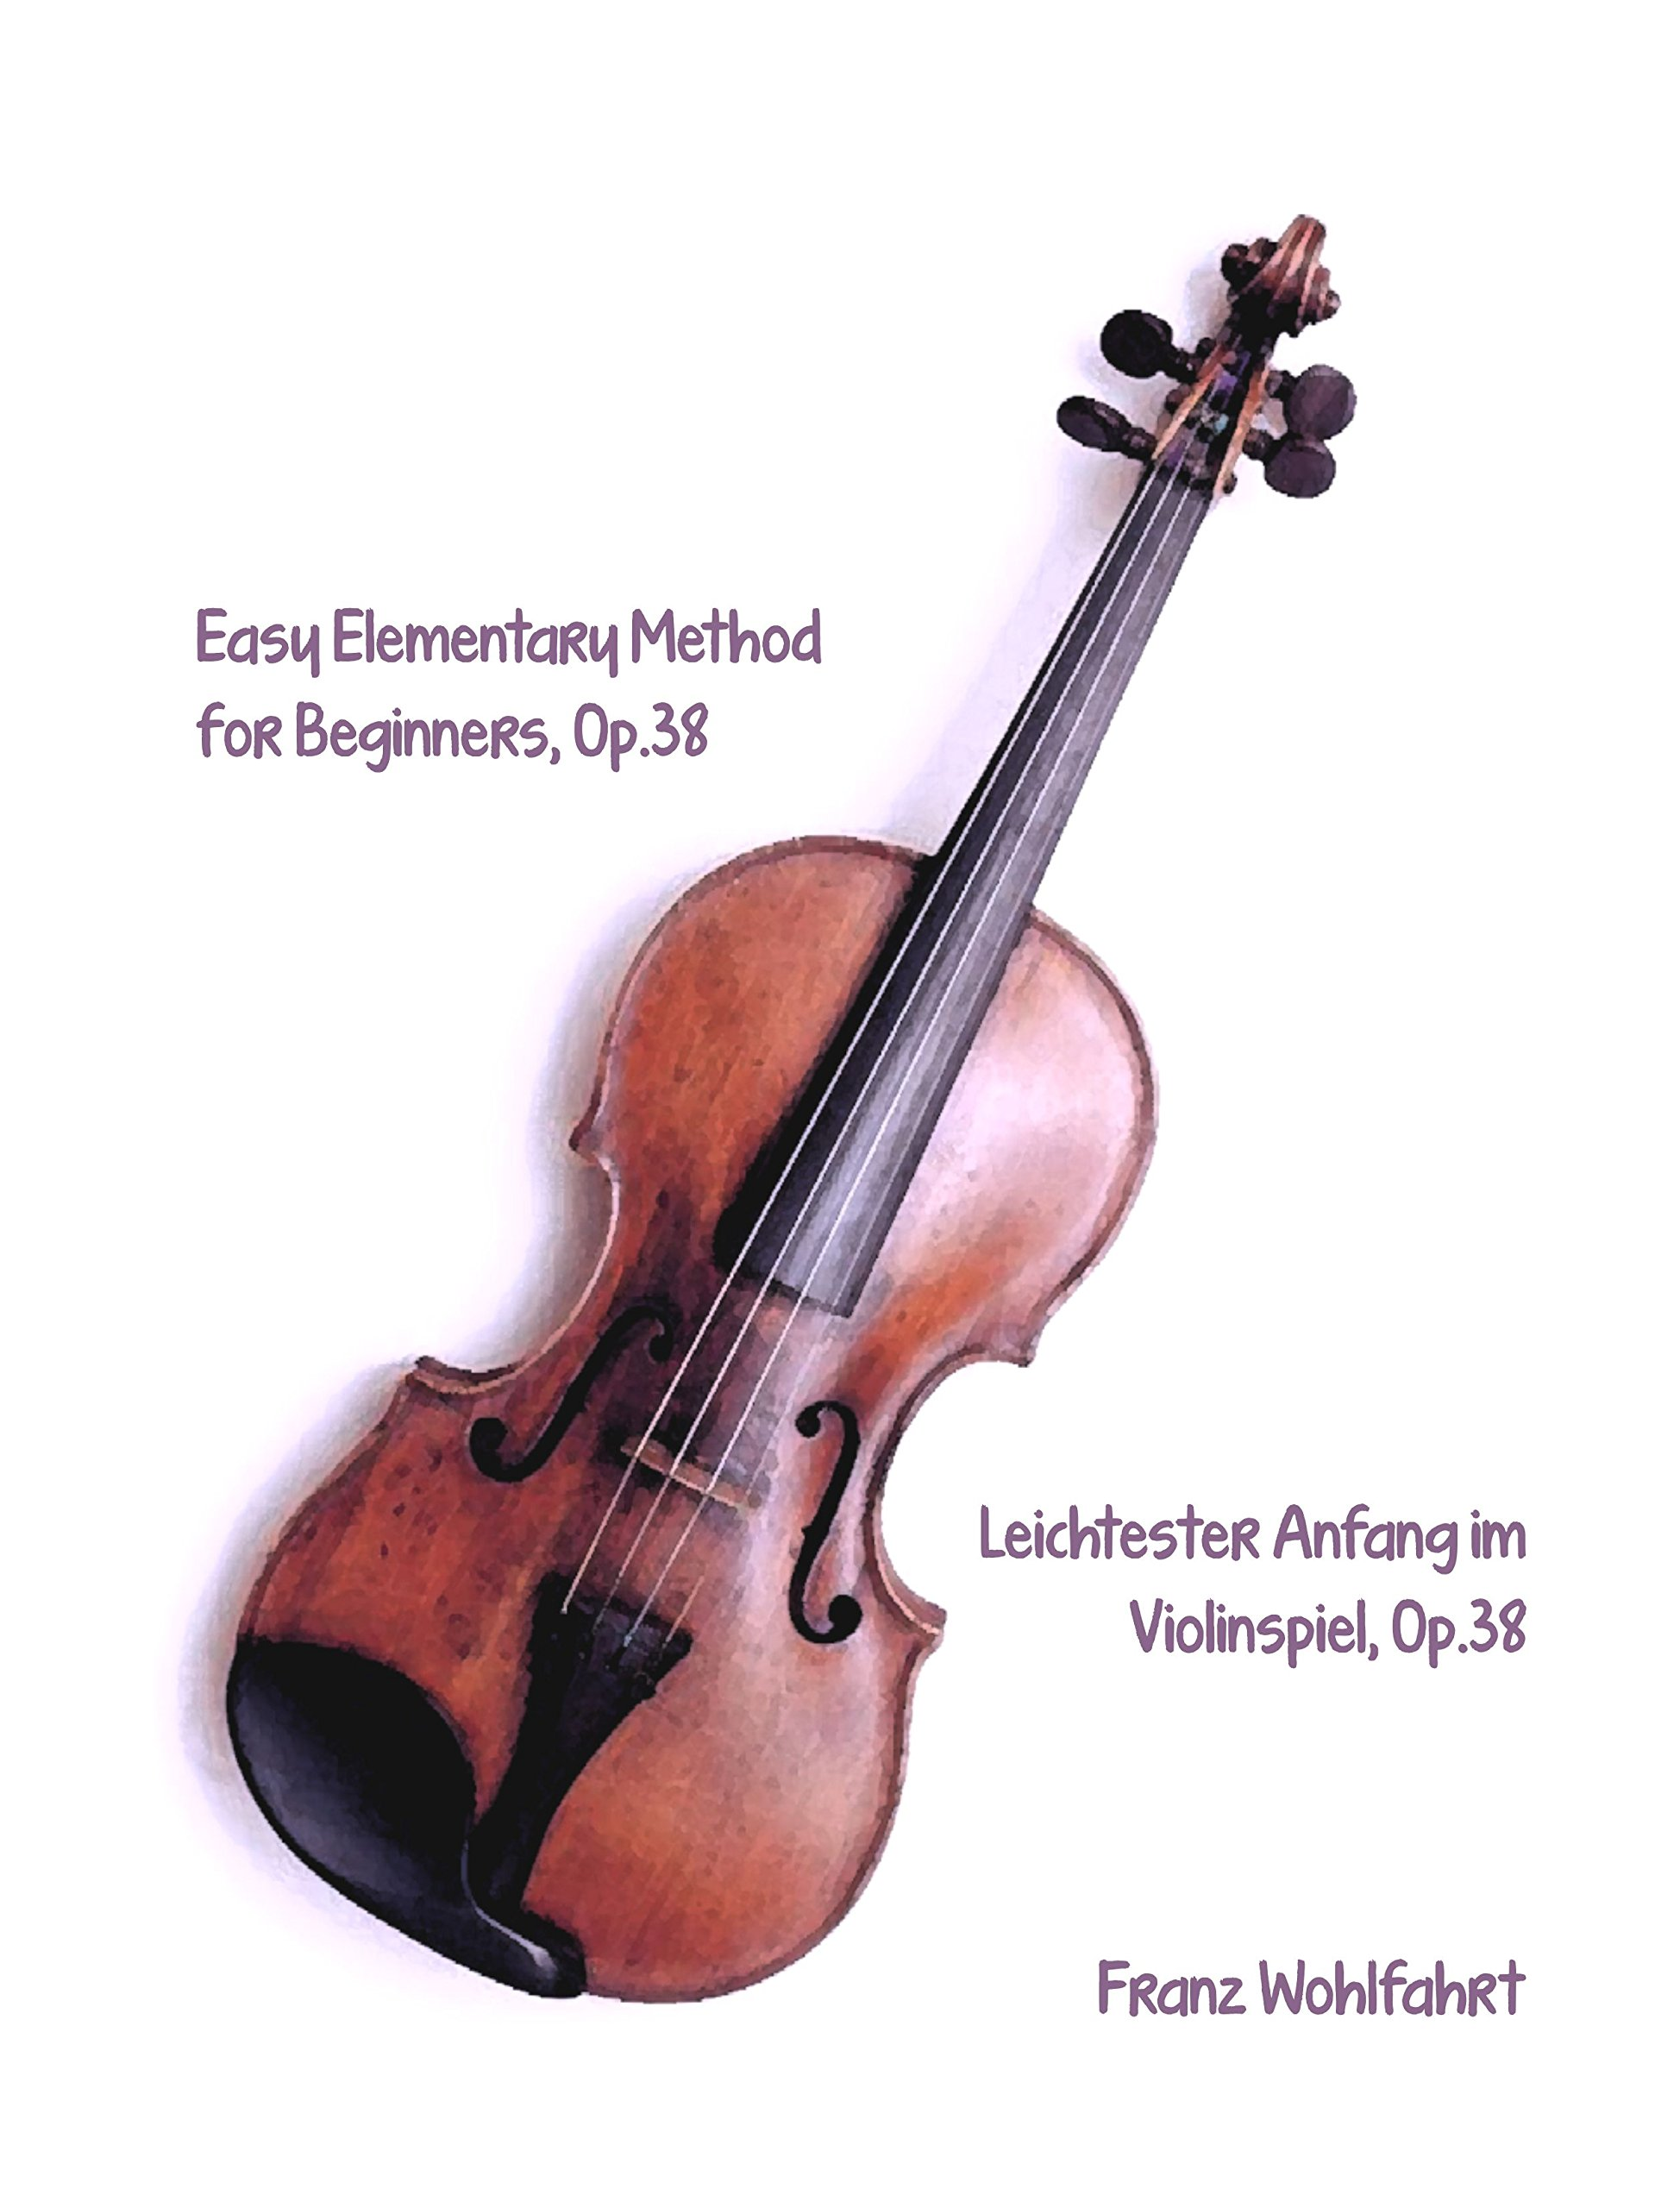 Easy Elementary Method for Beginners / Leichtester Anfang im Violinspiel, Op.38 by Franz Wohlfahrt. Complete Method.[Student Loose Leaf Facsimile Edition. Re-Imaged from Original for Greater Clarity. 2014] pdf